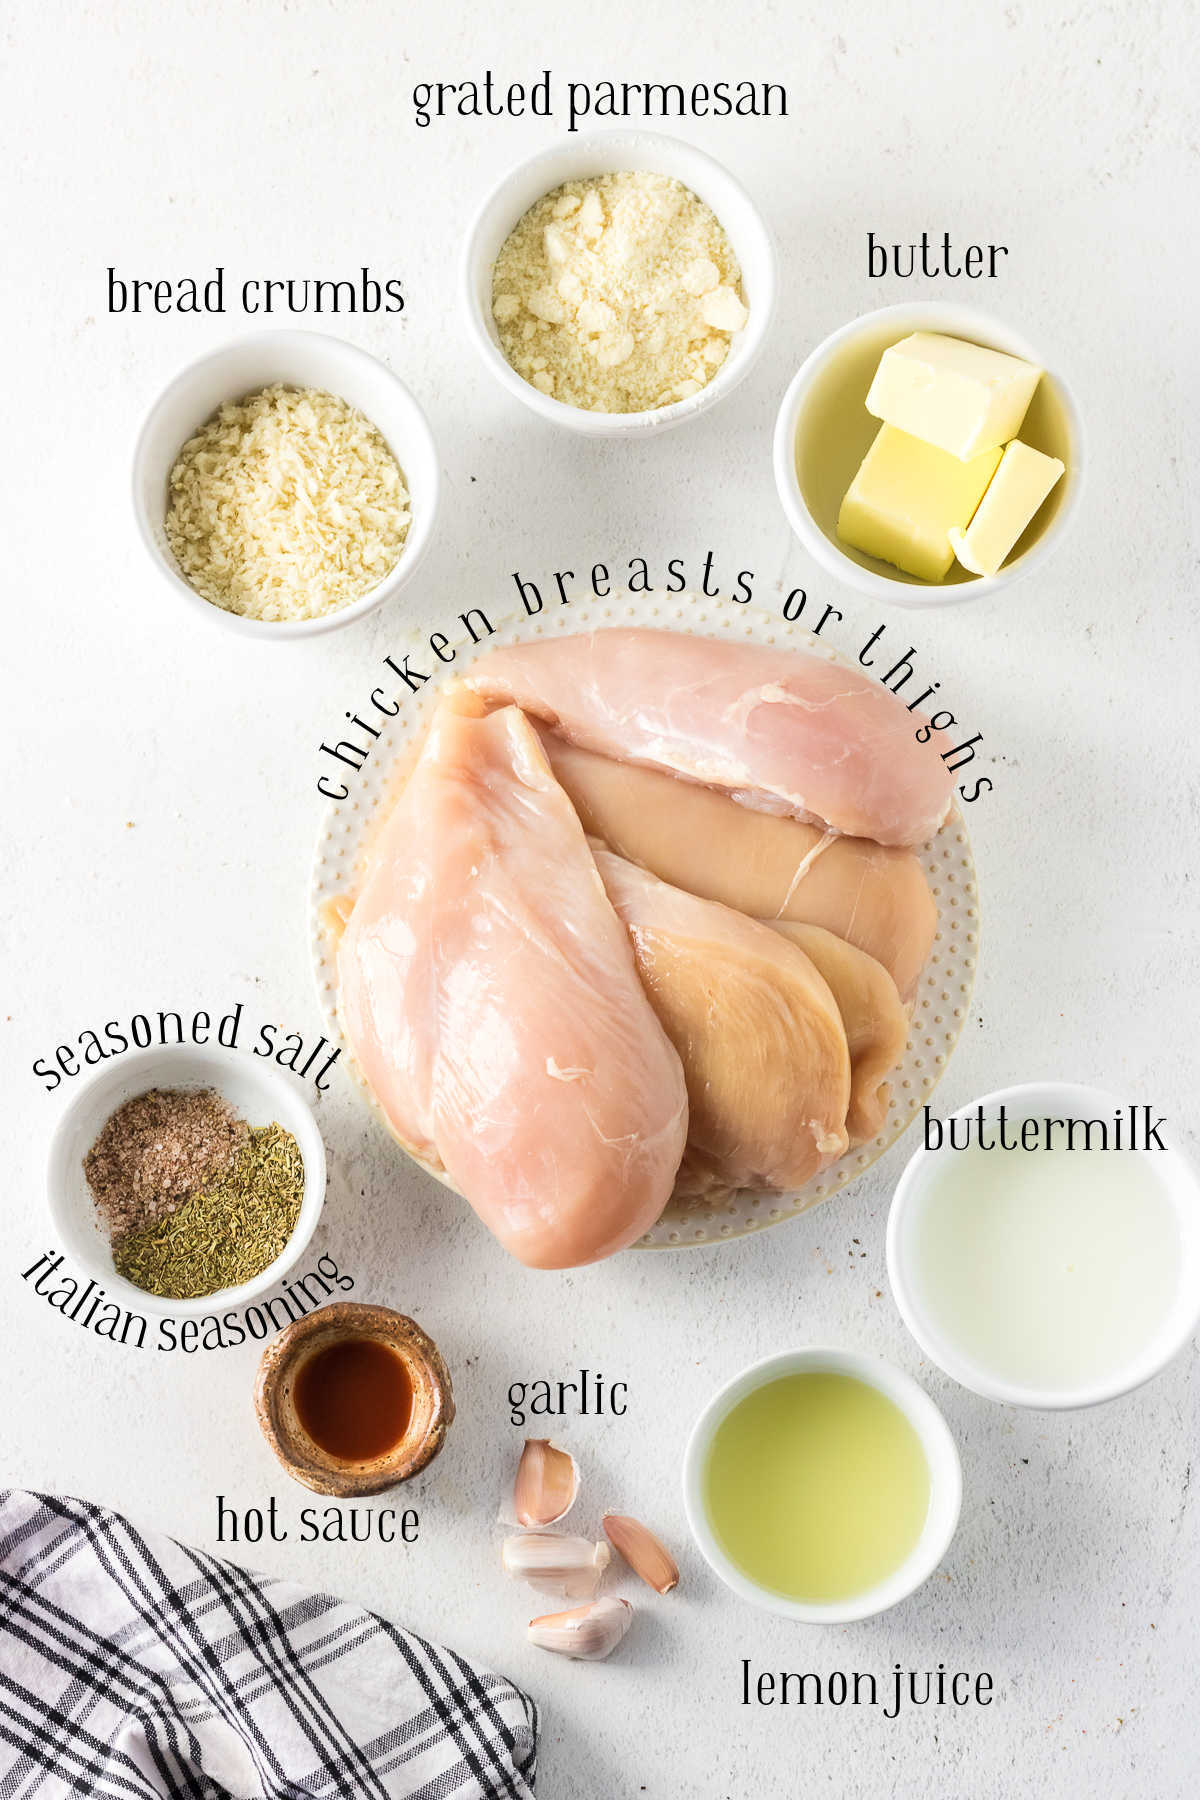 Labeled ingredients for this chicken recipe.